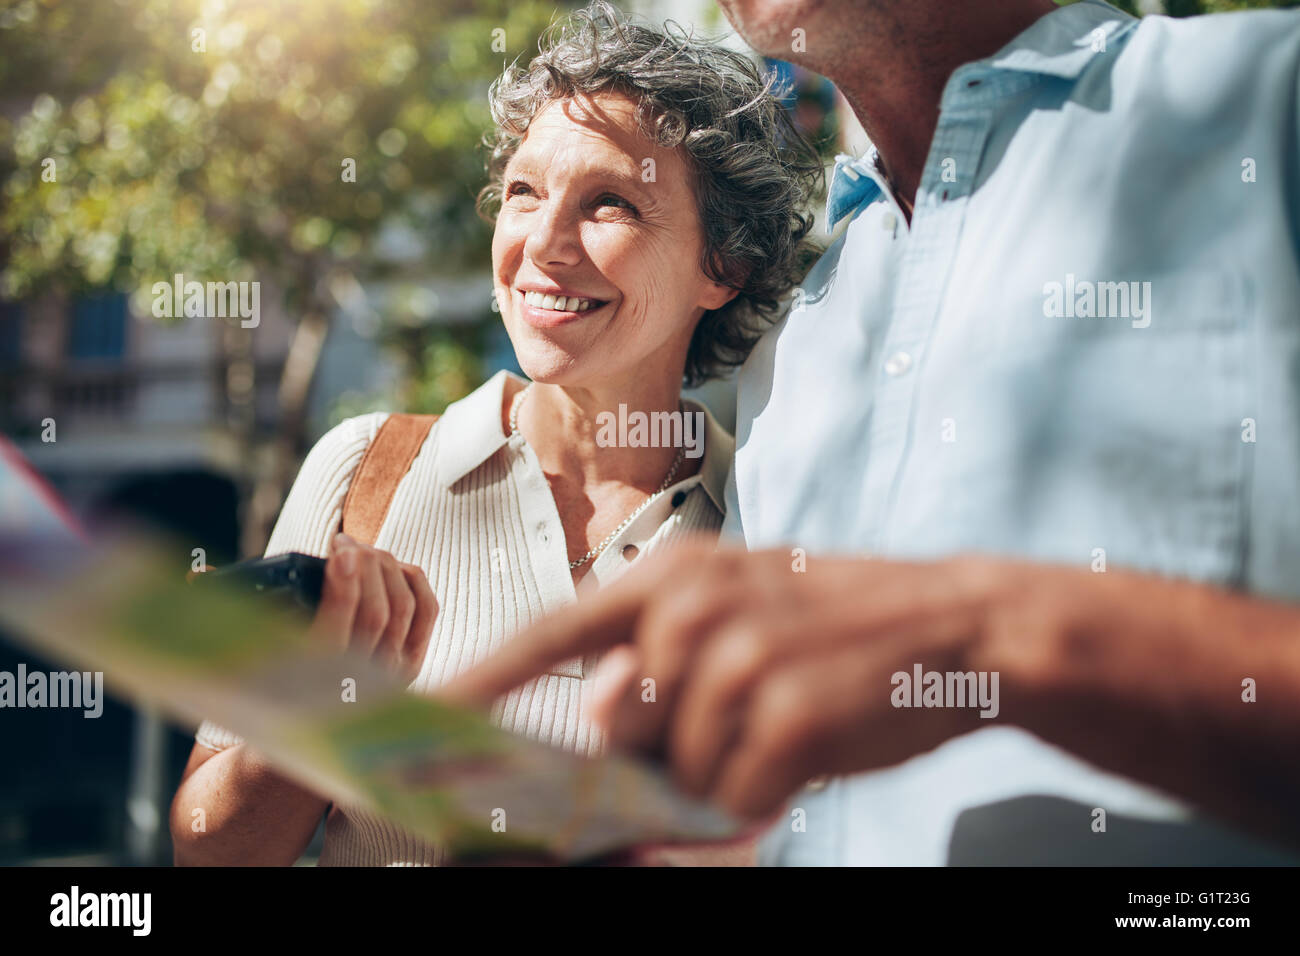 Senior woman with a man holding a city map. Happy and joyful, enjoying in retirement. - Stock Image